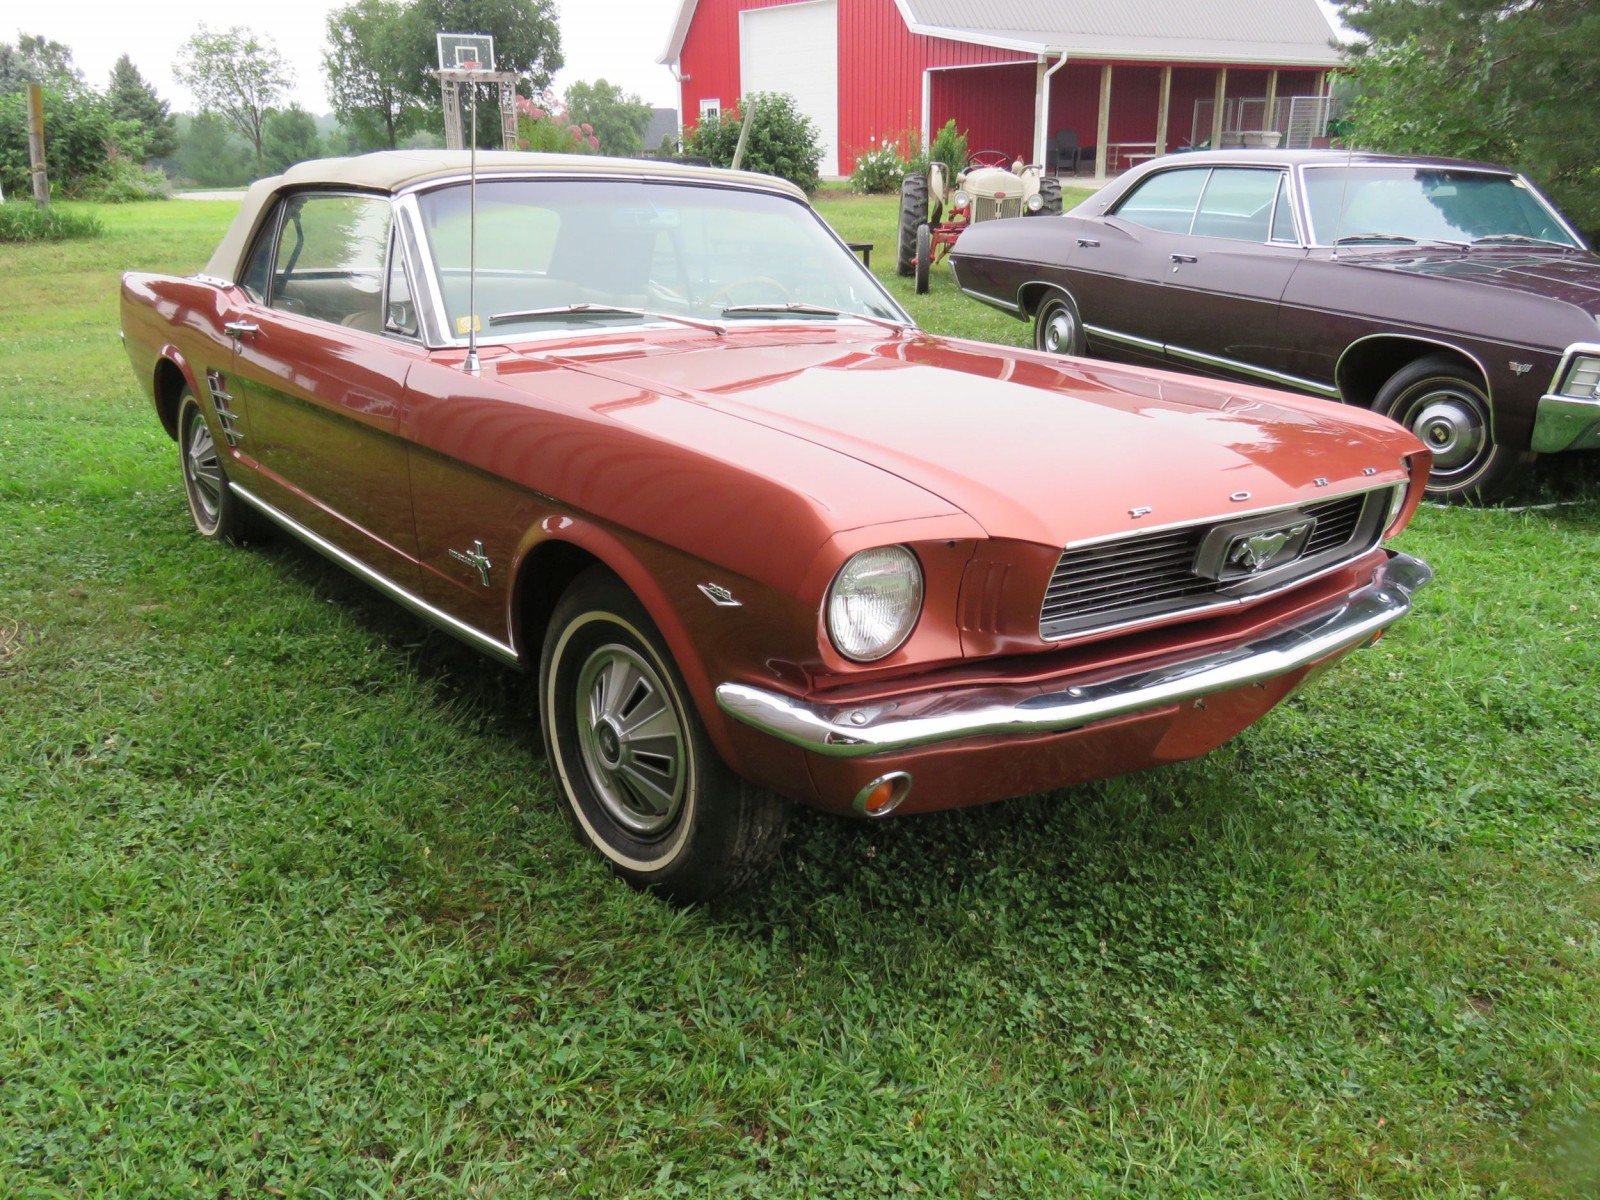 1966 Ford Mustang Convertible - Image 3